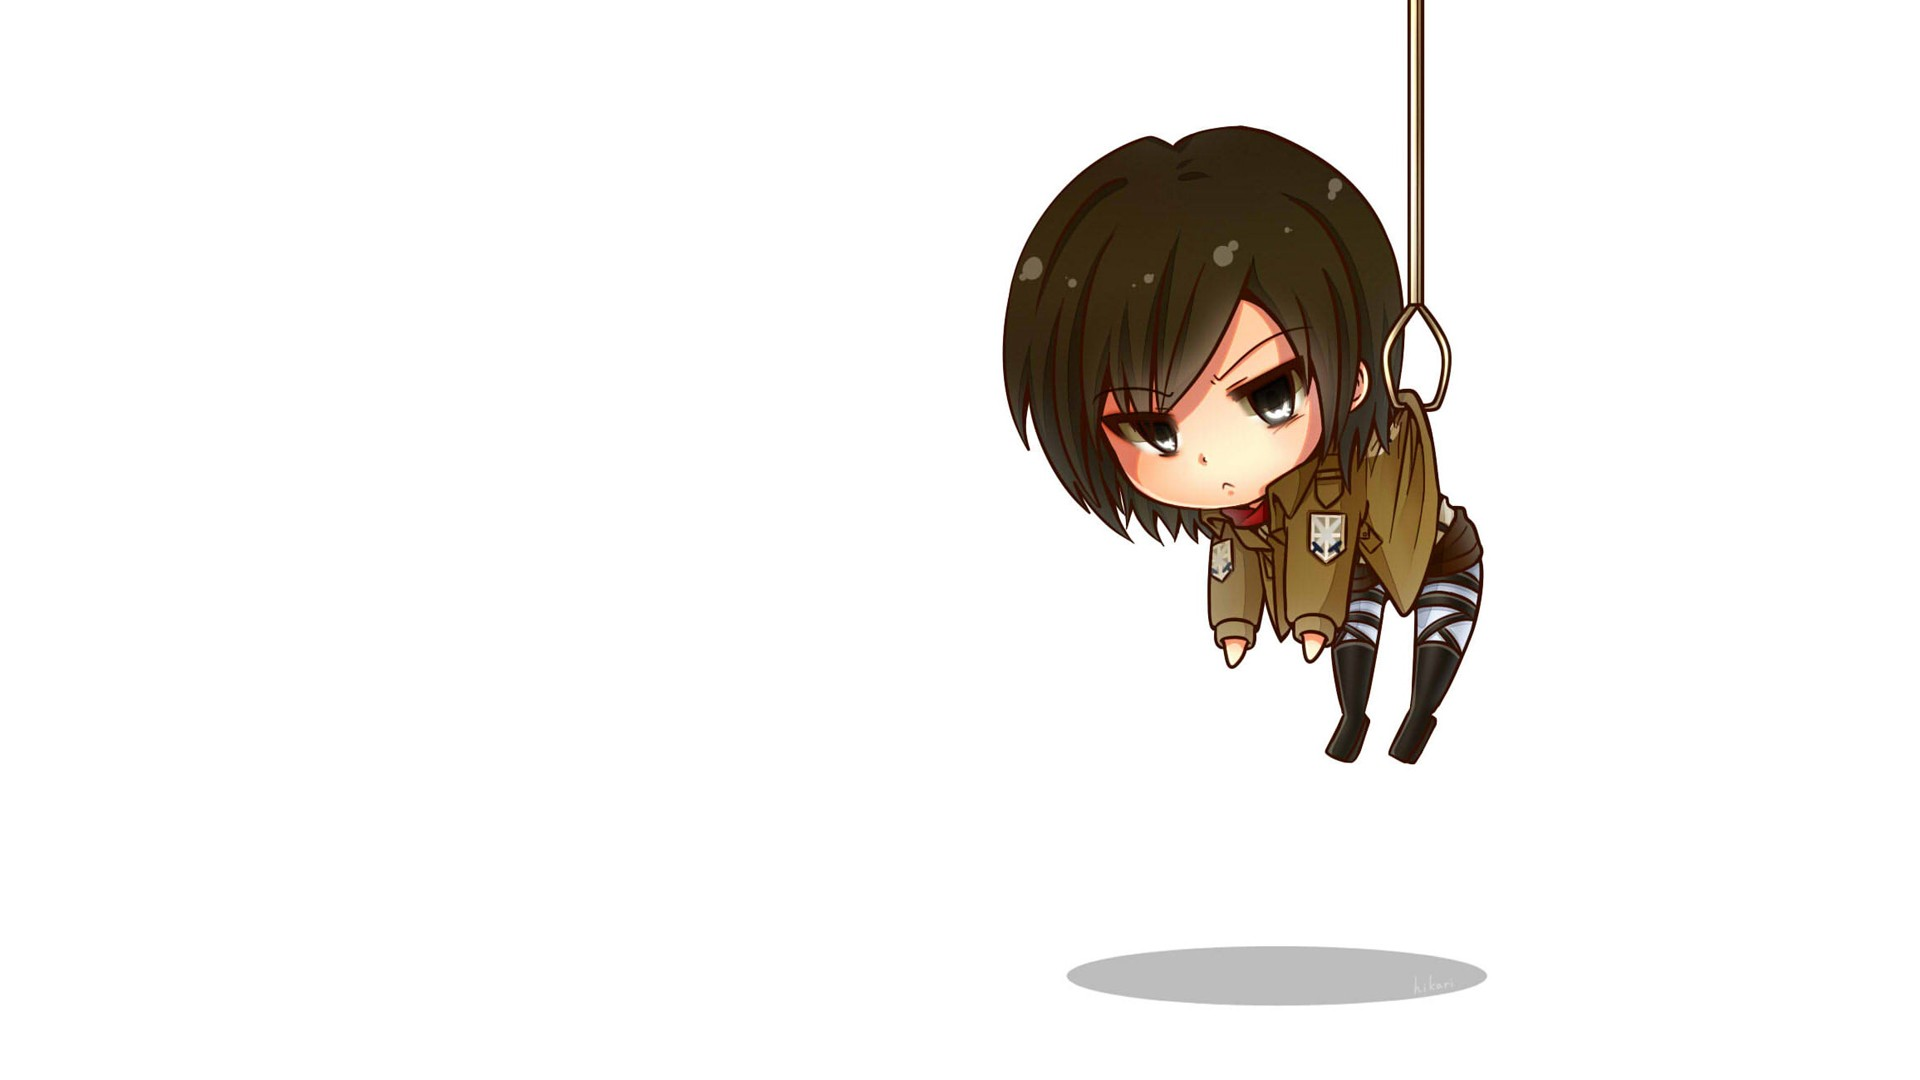 Mikasa Ackerman 3 Anime Background Animewp Com